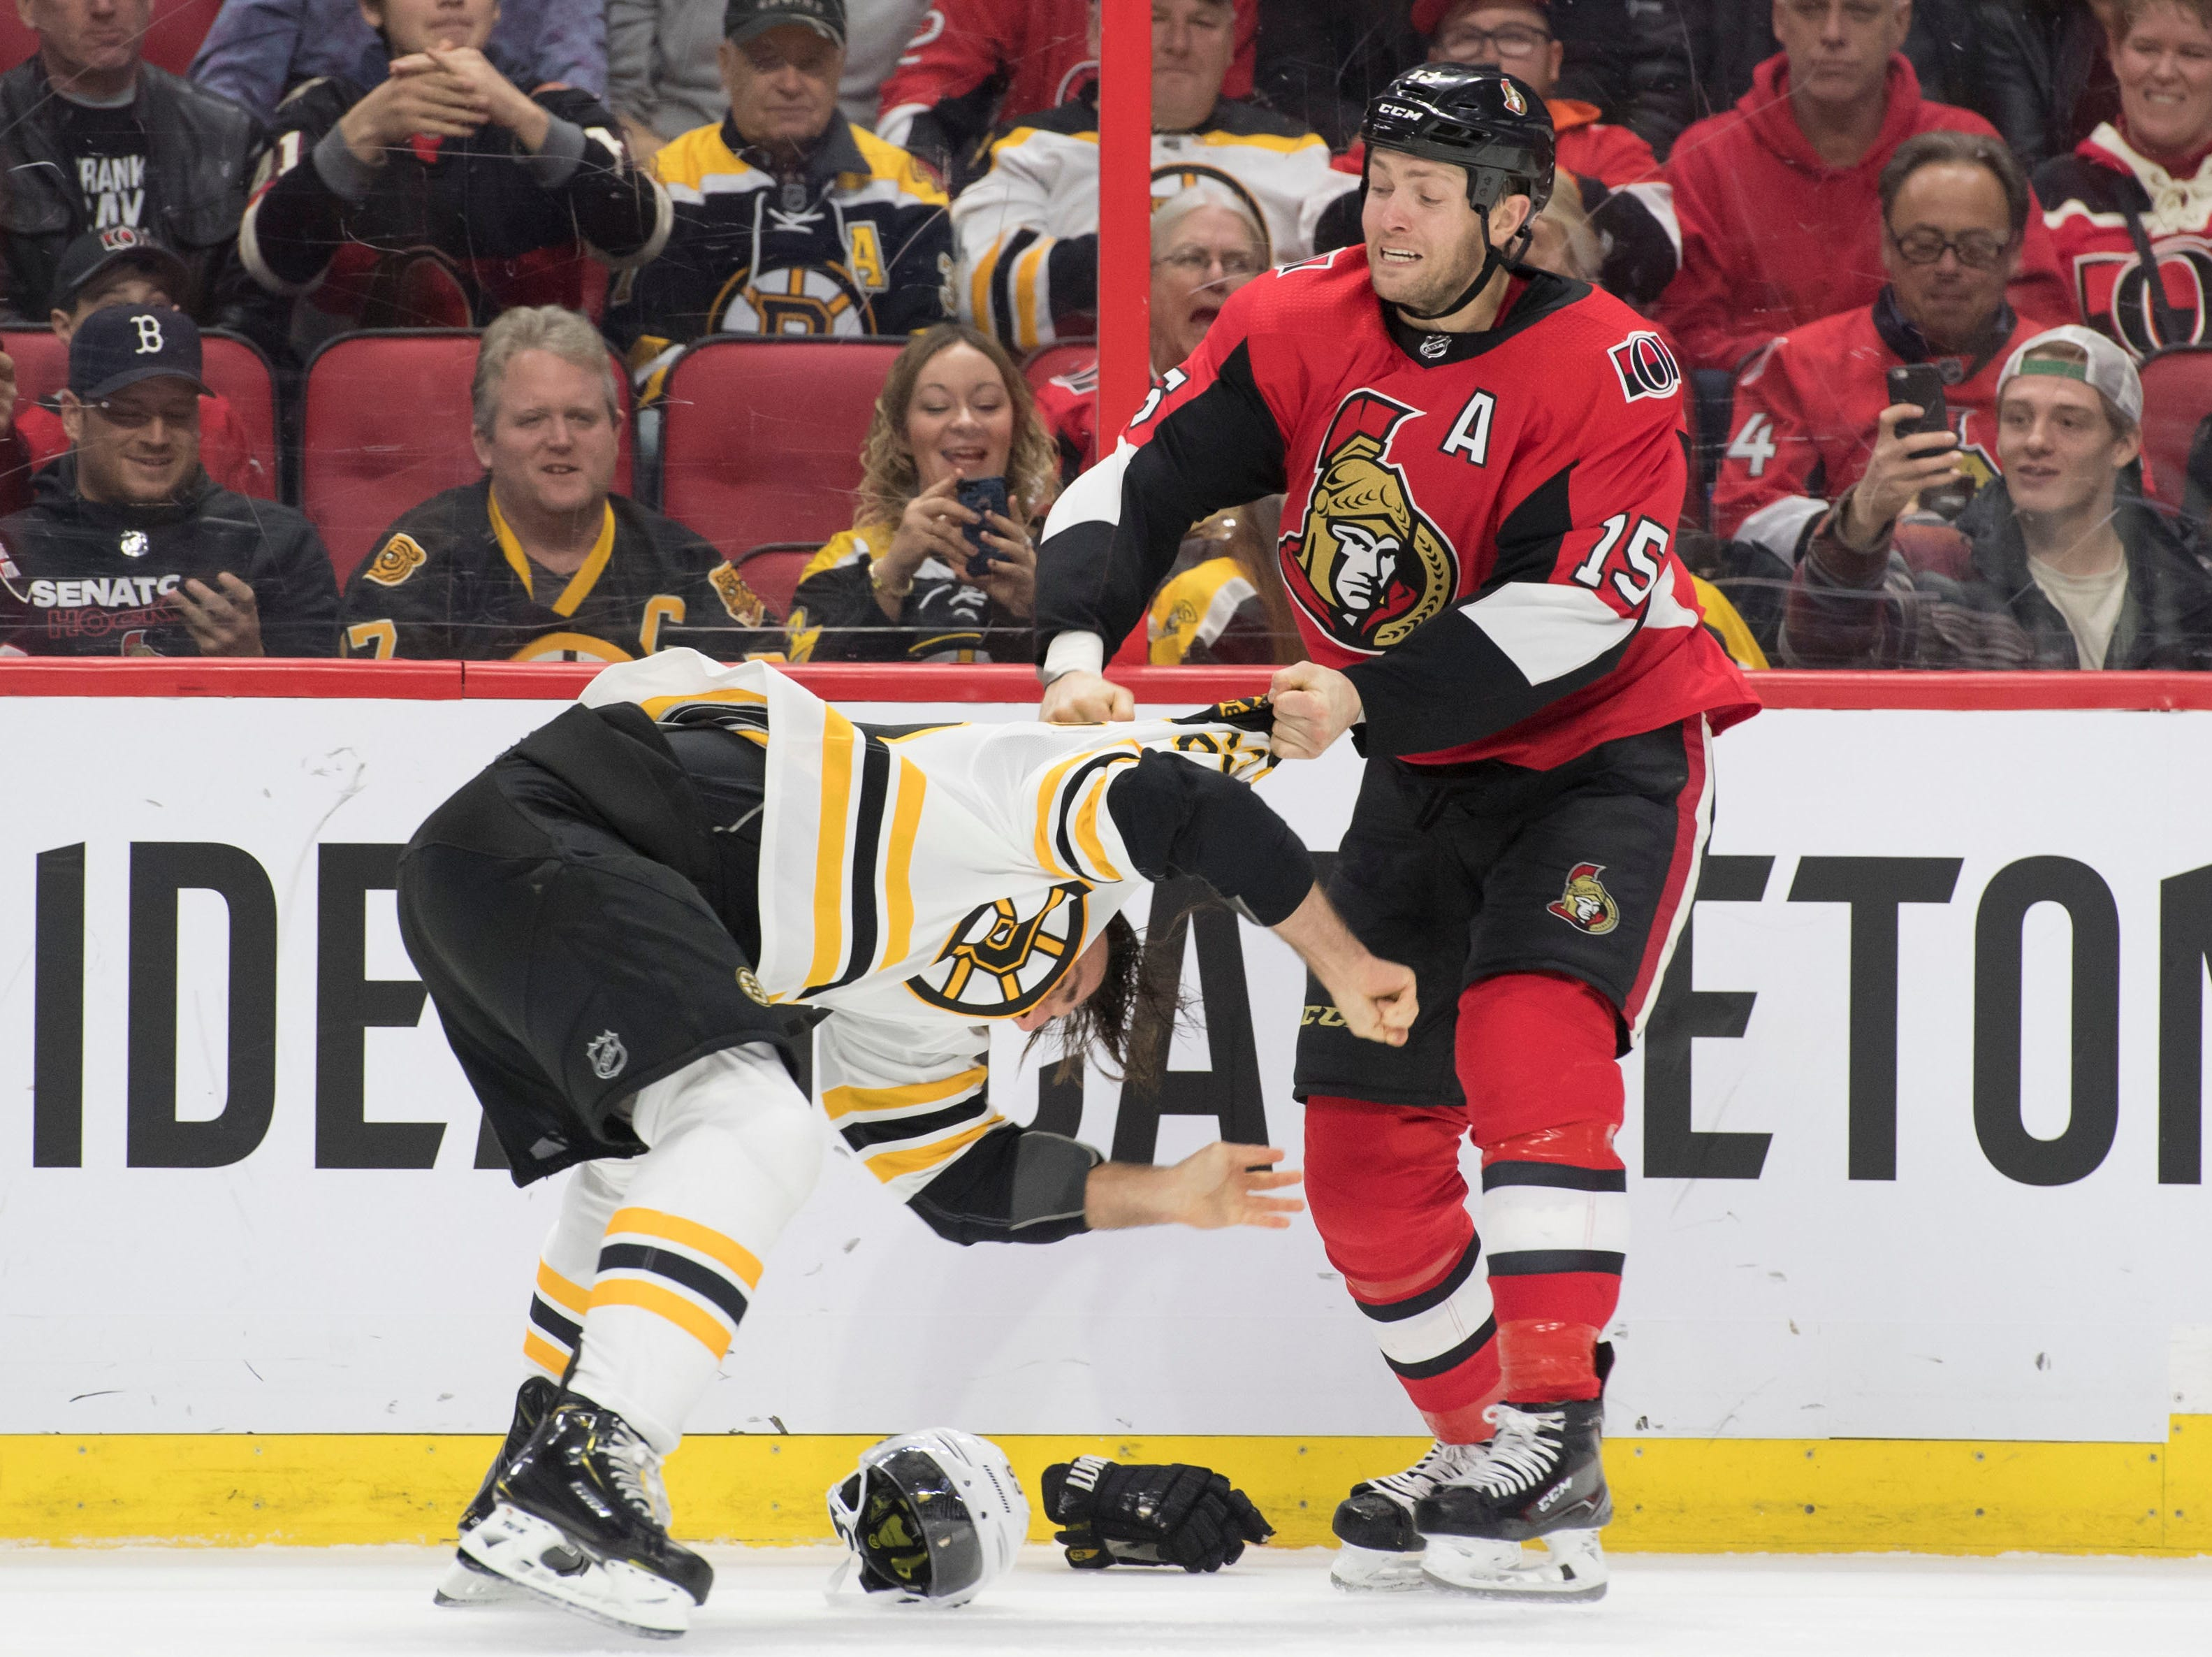 Oct. 23: Boston Bruins' Brad Marchand vs. Ottawa Senators' Zack Smith.